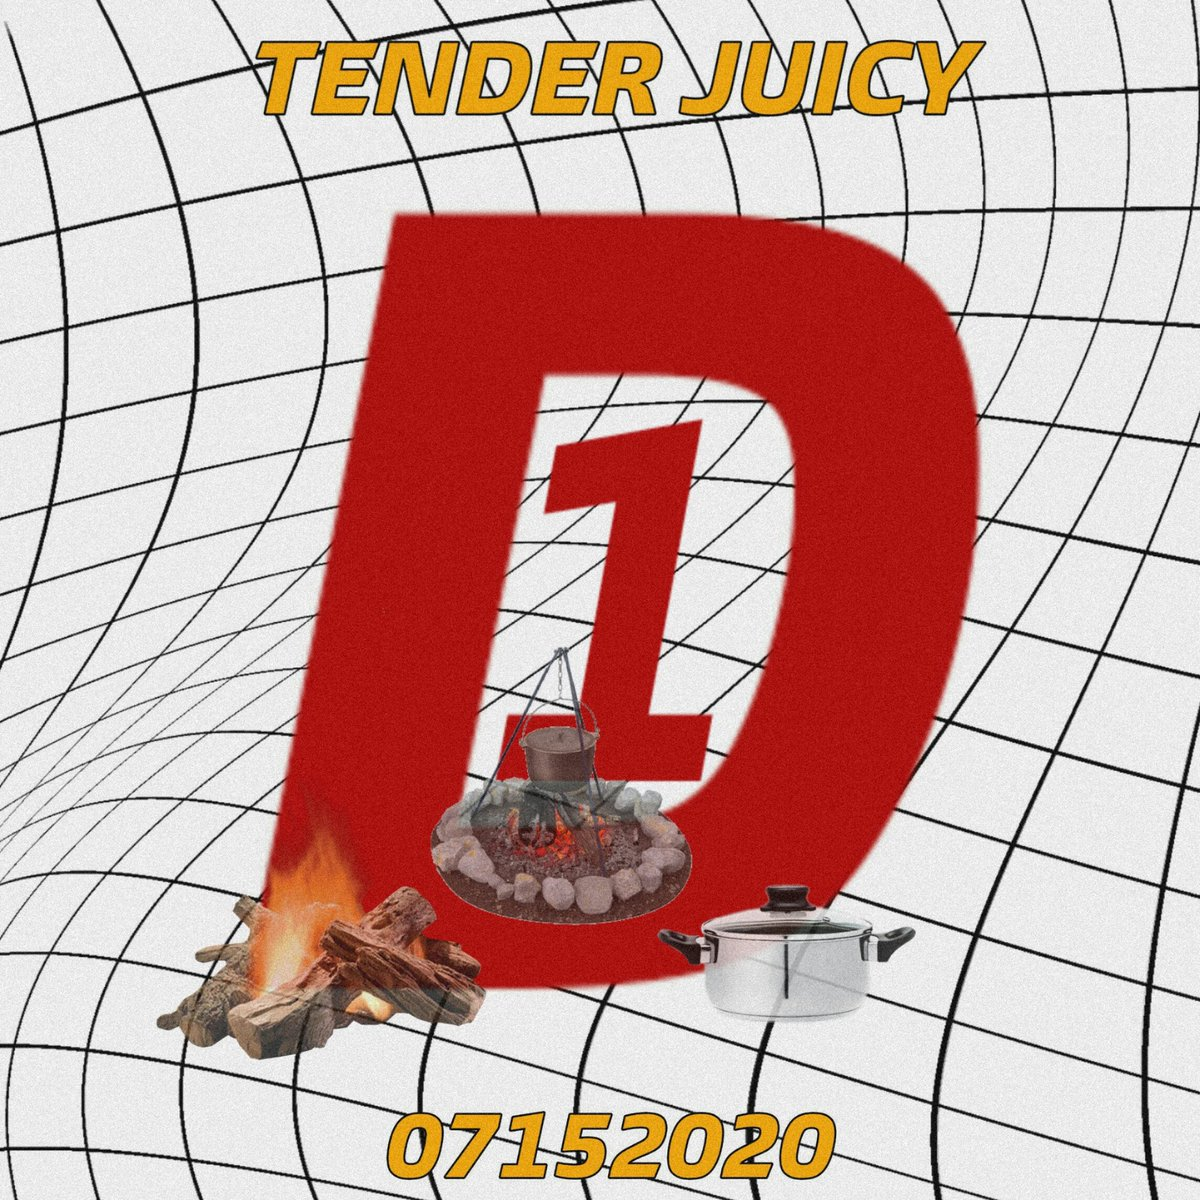 2 MONTHS WITH TENDER JUICY • D-1 POSTER  TJ Party ✅2020.07.15 (ALL DAY)  #TENDER_JUICY #2MonthsWithTJ  #D_1 #2020_0715 #SinigangNaHotdog